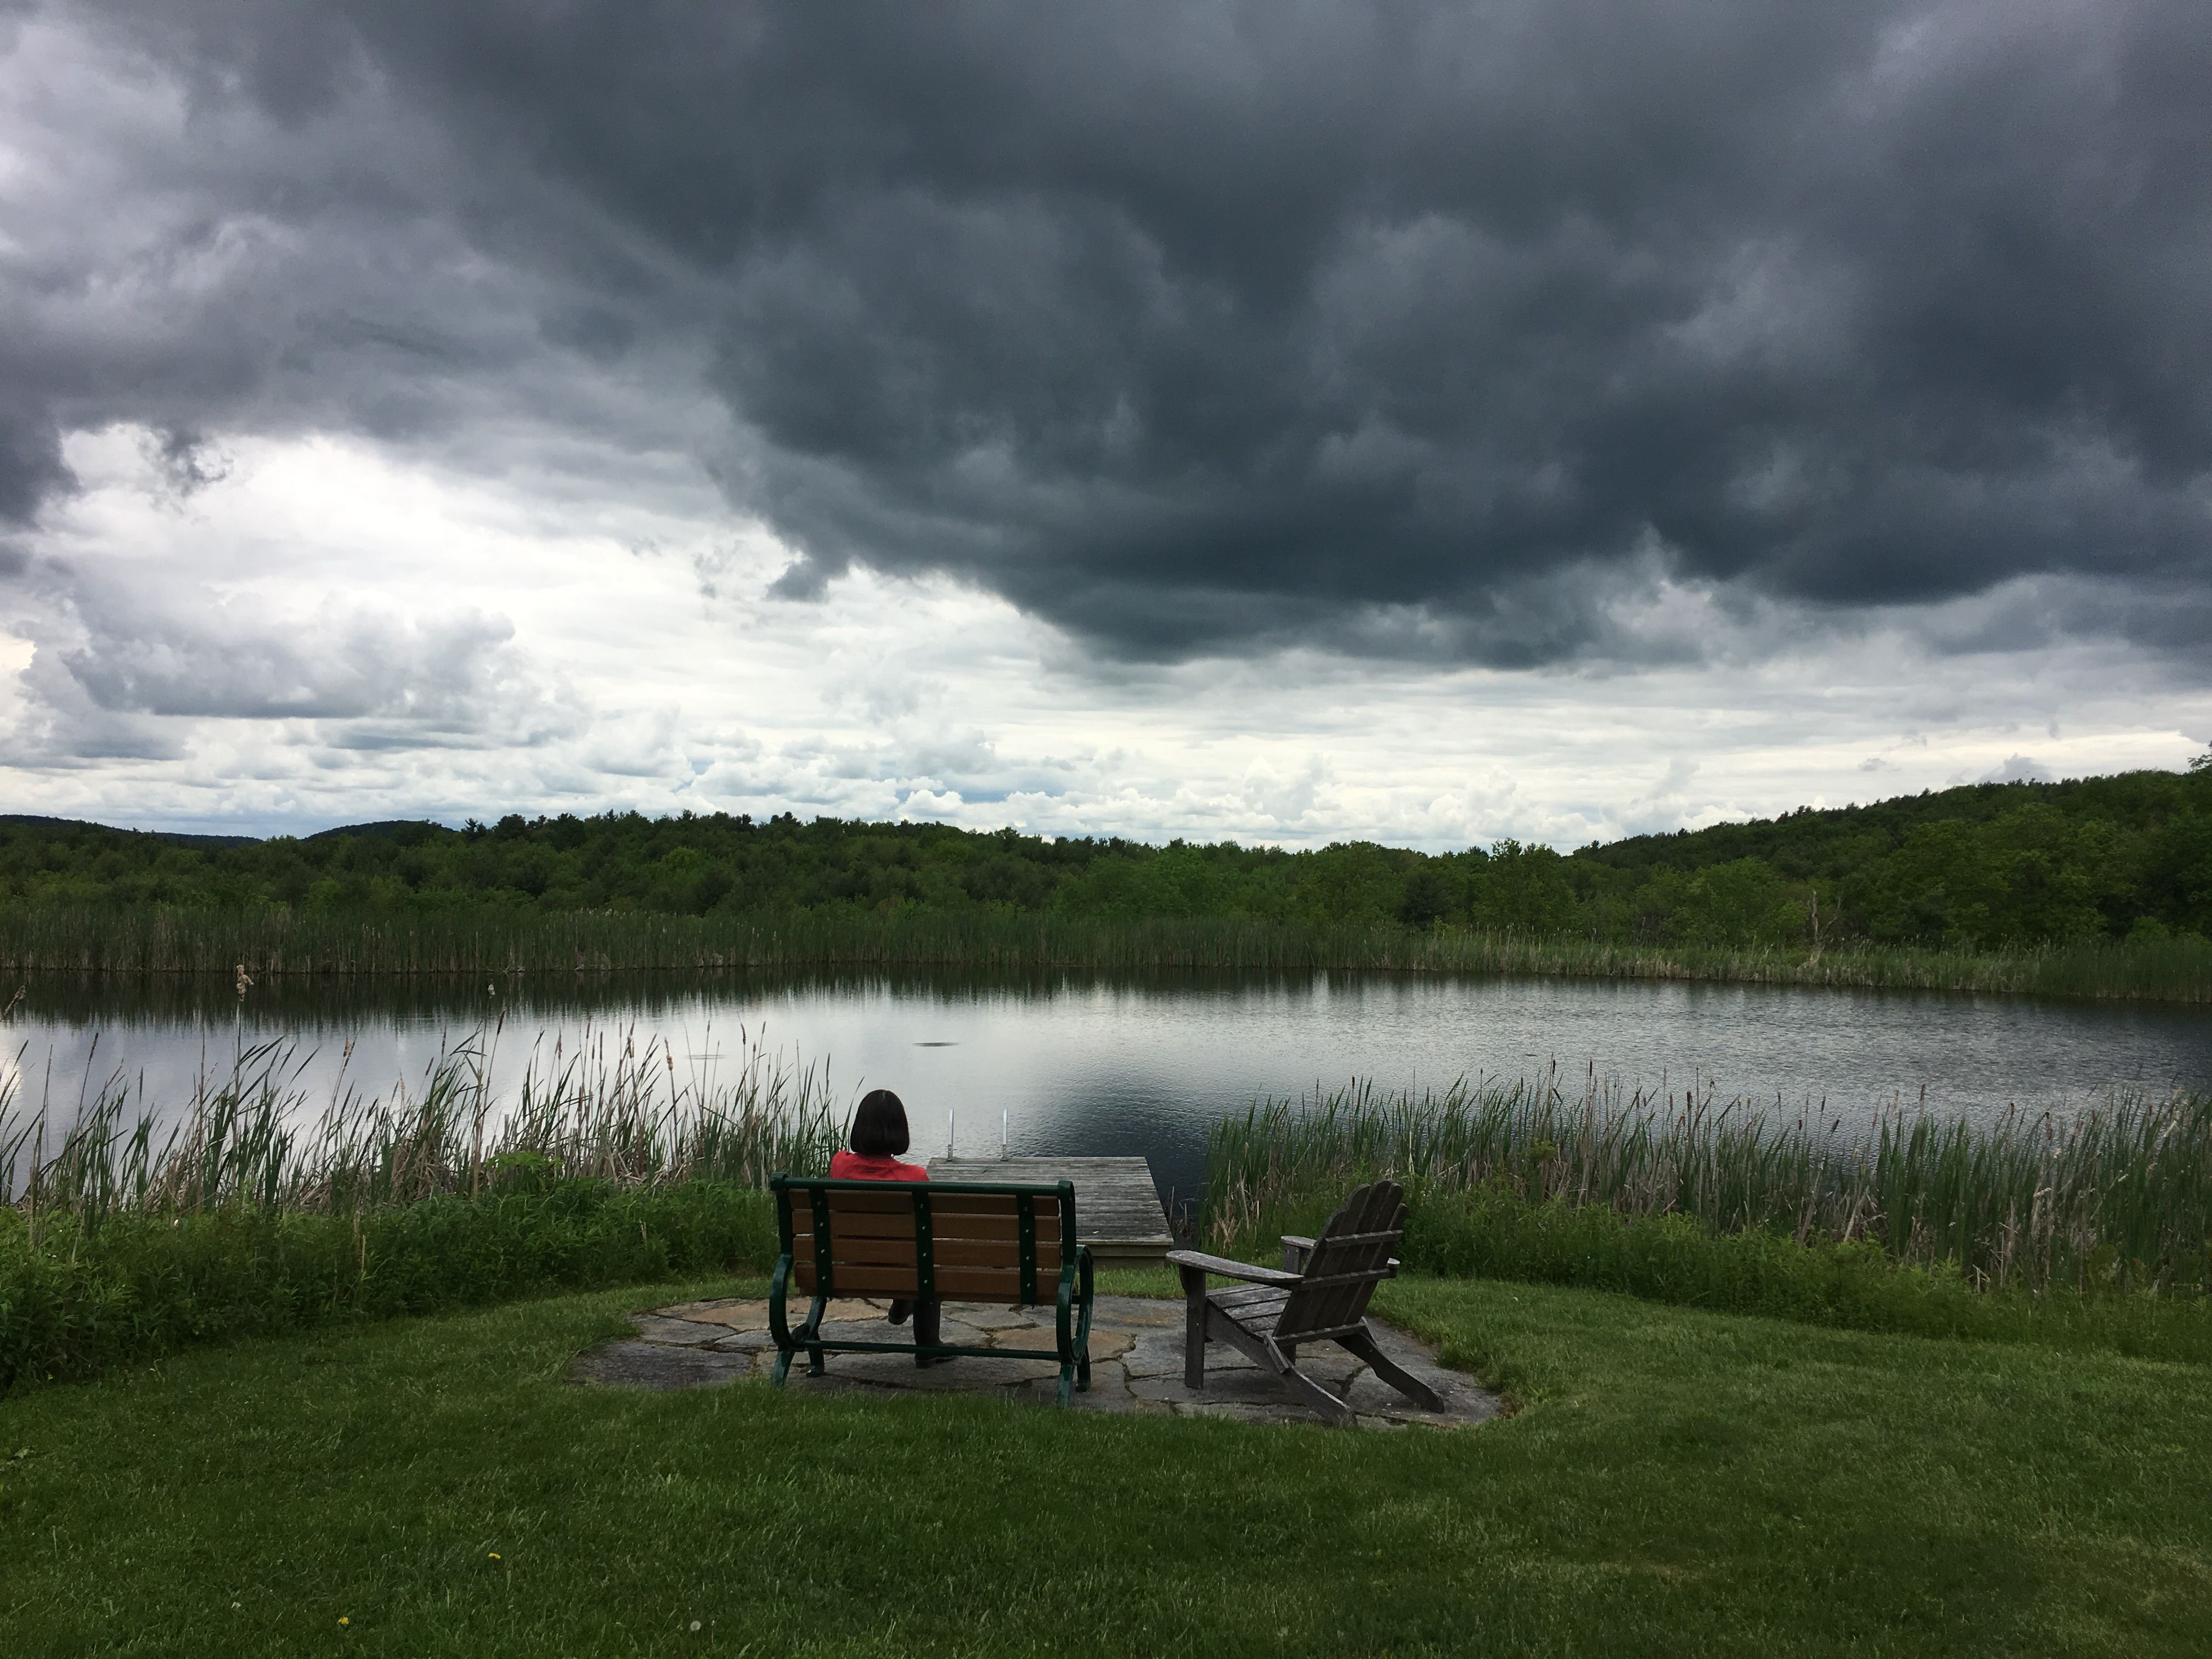 Sitting by the pond as the clouds roll in, Columbia County, New York, 6/17